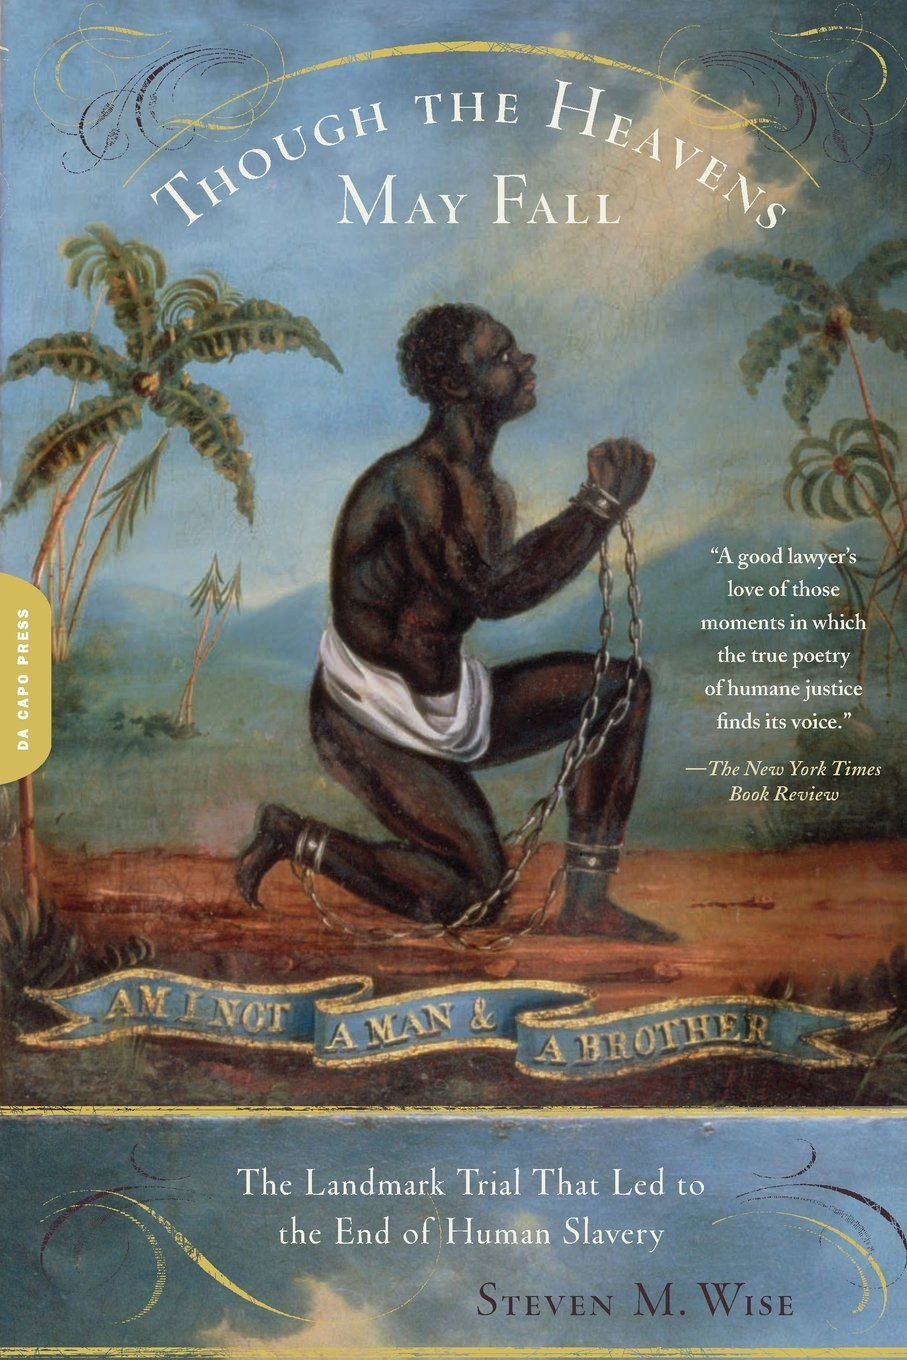 Though the Heavens May Fall: The Landmark Trial That Led to the End of Human Slavery